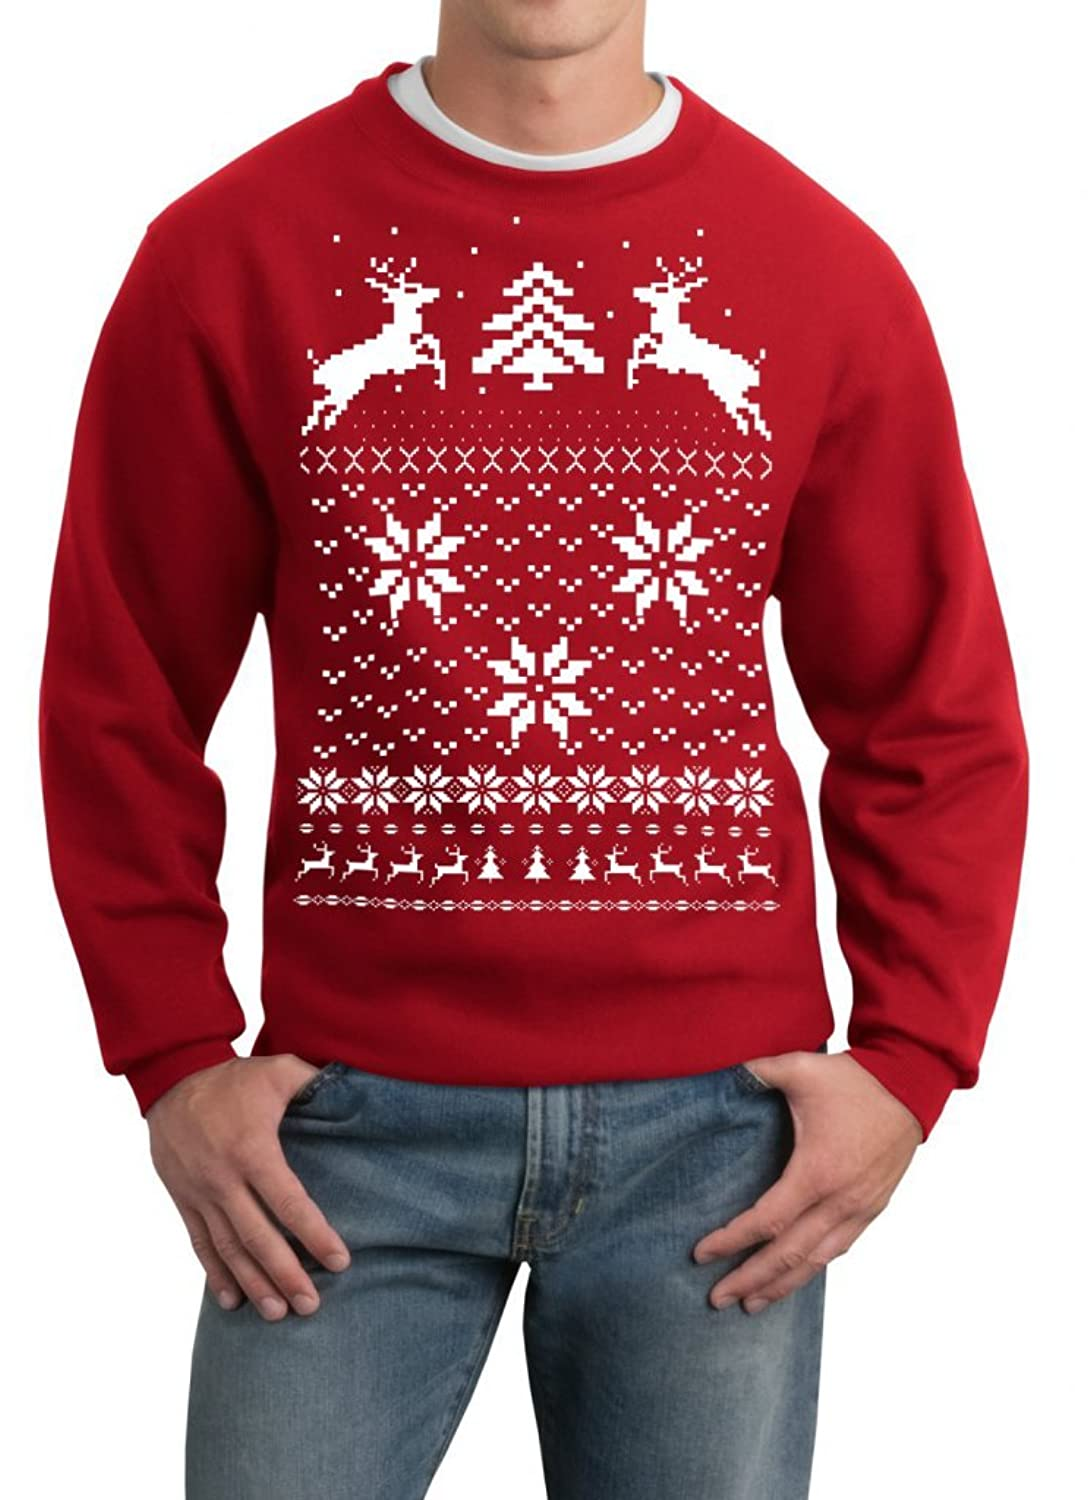 Description. Even reindeer are plagued with embarrassing dingleberries all the way through the Vacation season! This unsightly Christmas sweater includes a reindeer with brown cotton balls striking from his Heinie and sweet cane piping at the sleeves, collar, and waist.